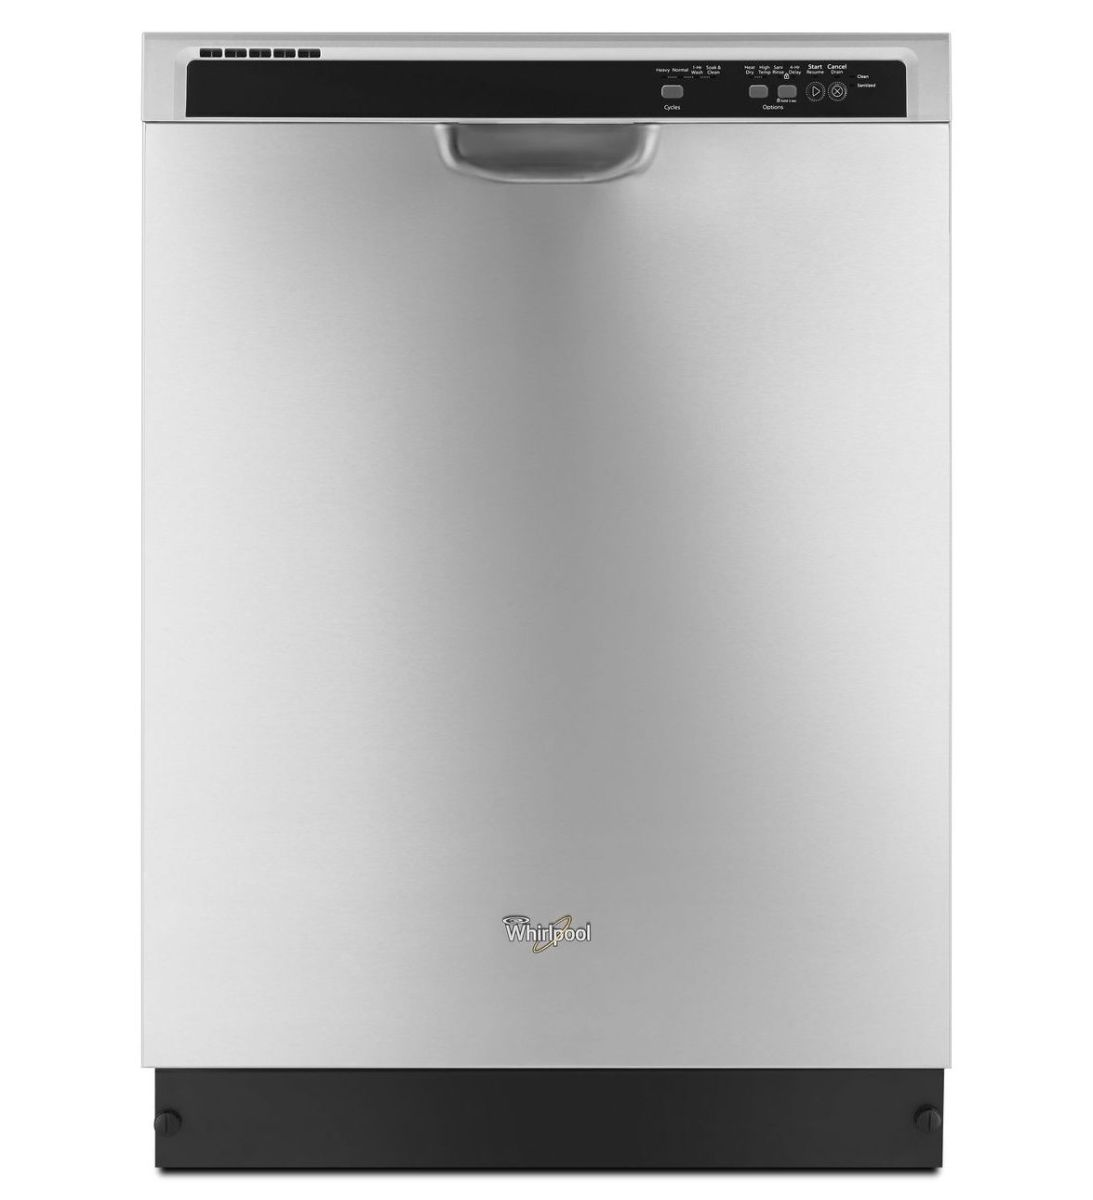 Whirlpool Front Control Dishwasher In Monochromatic